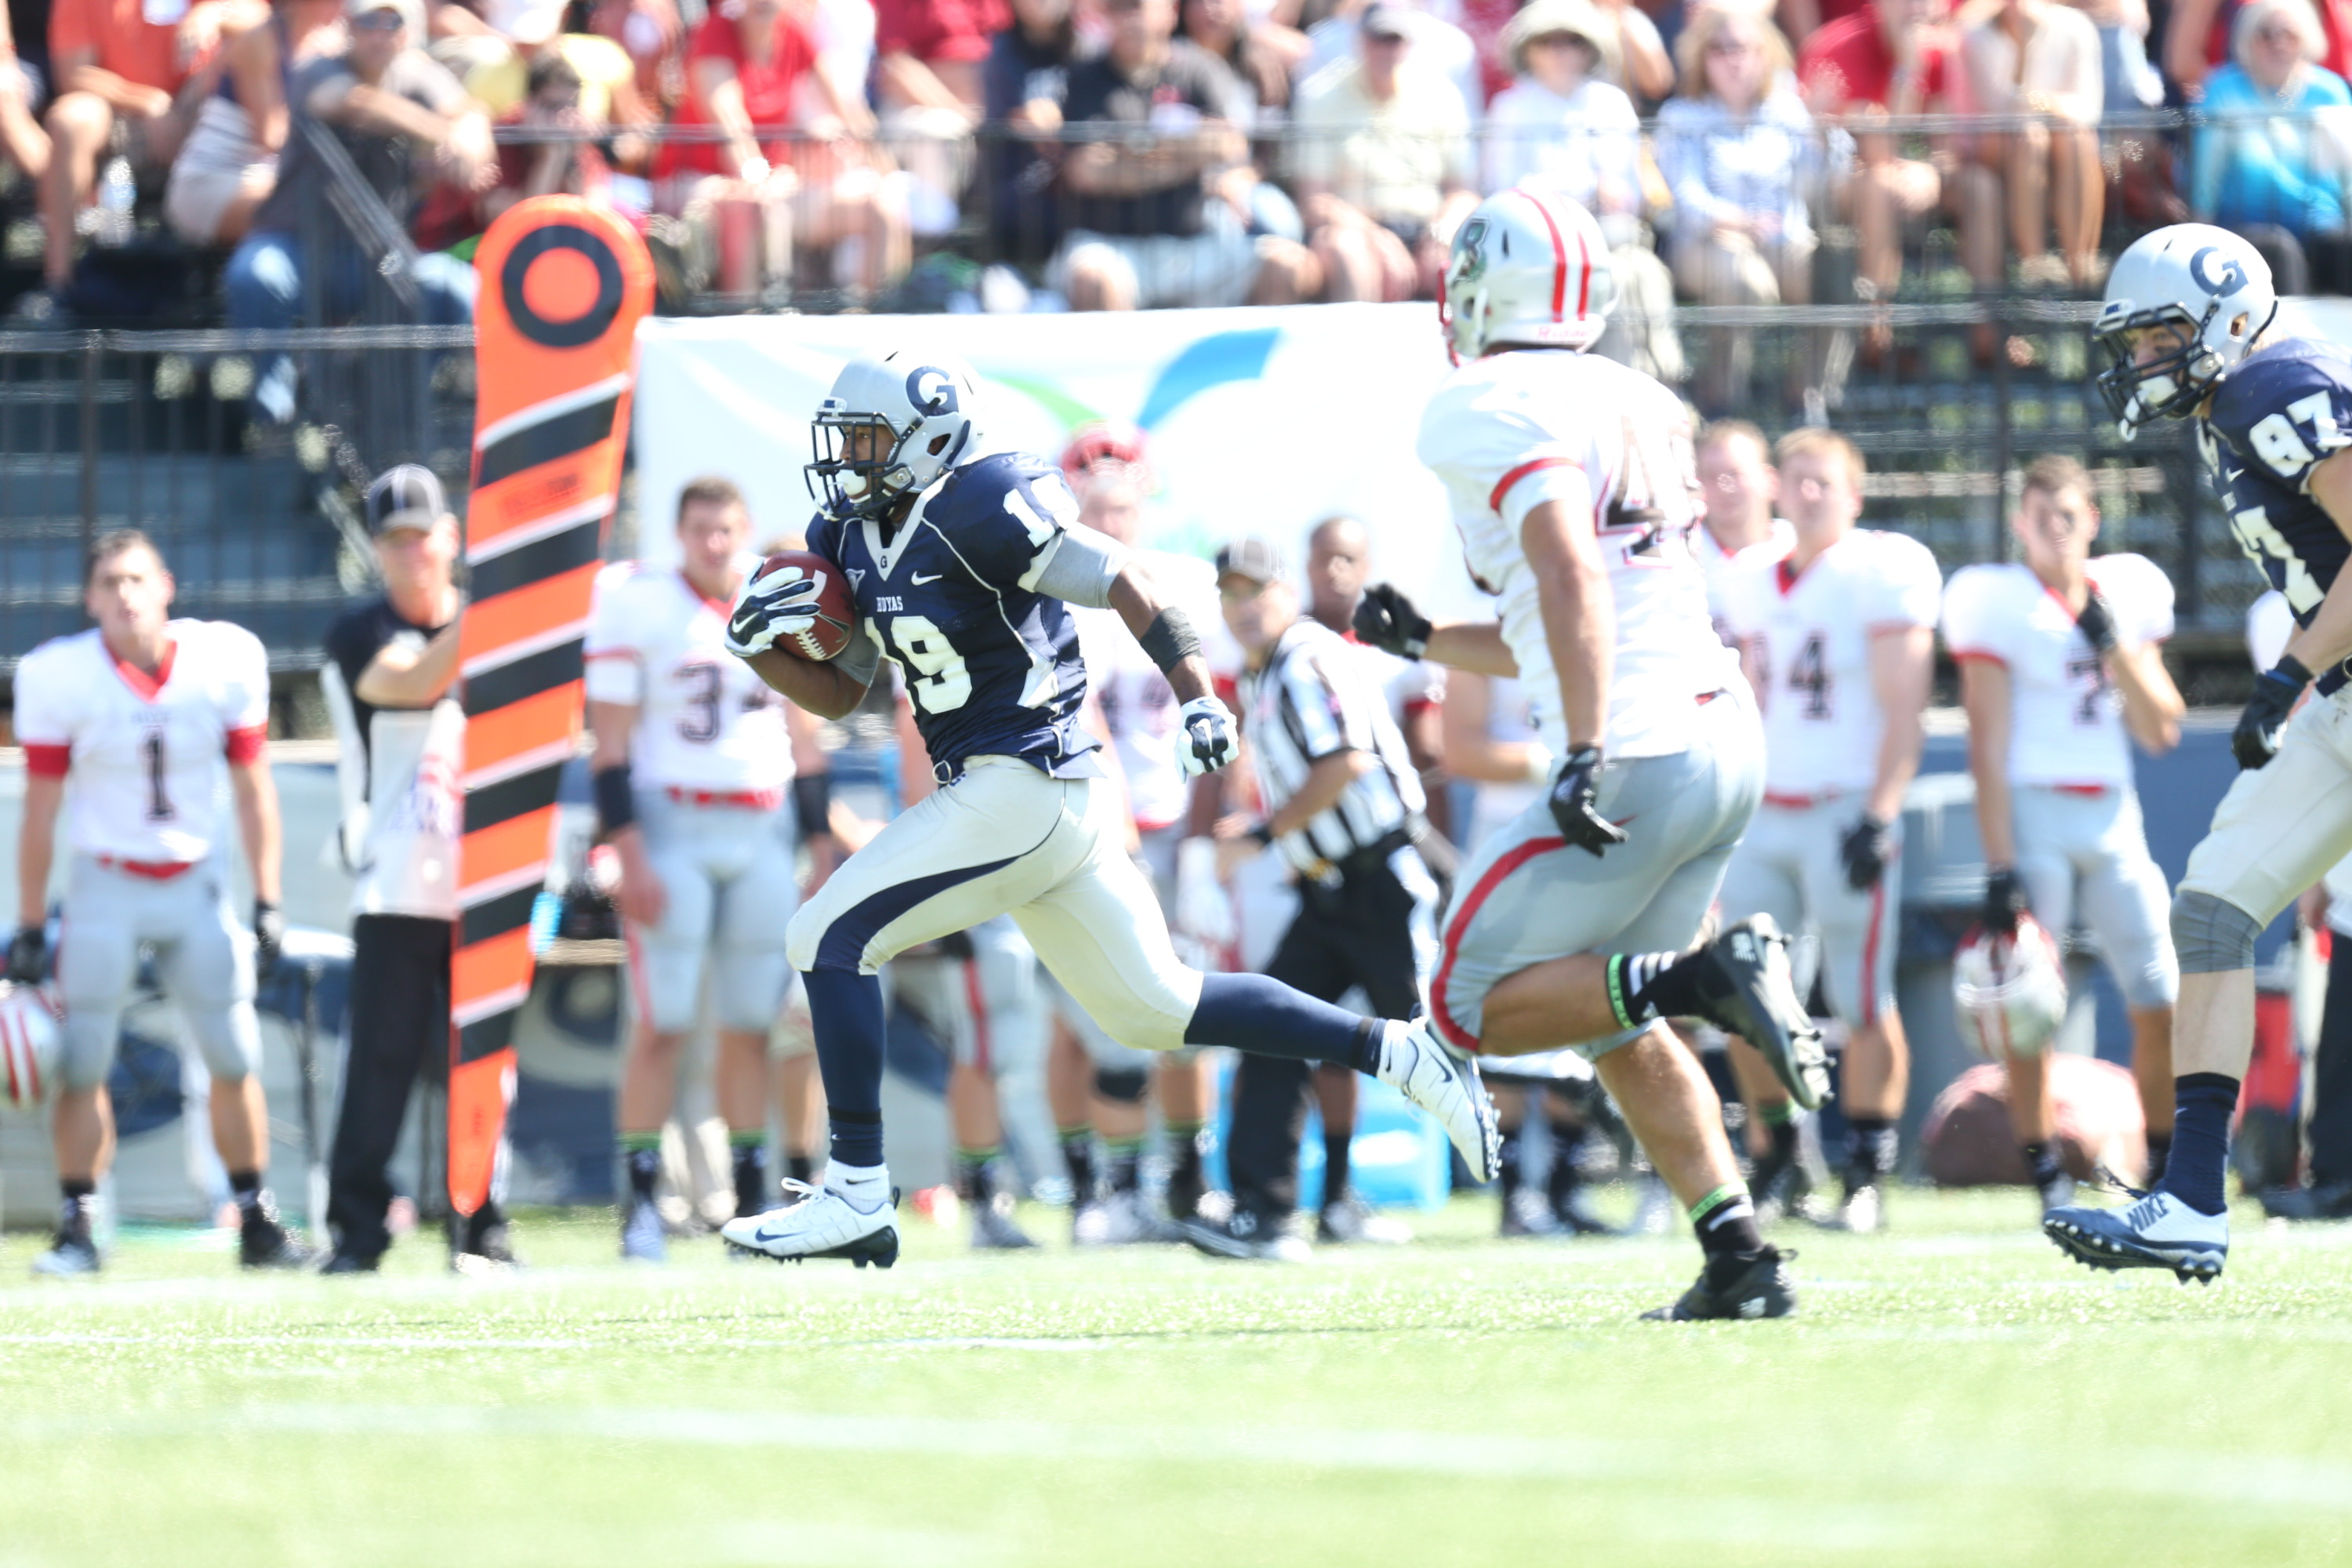 Daniel Wright scored on a 57-yard touchdown rush against Brown.